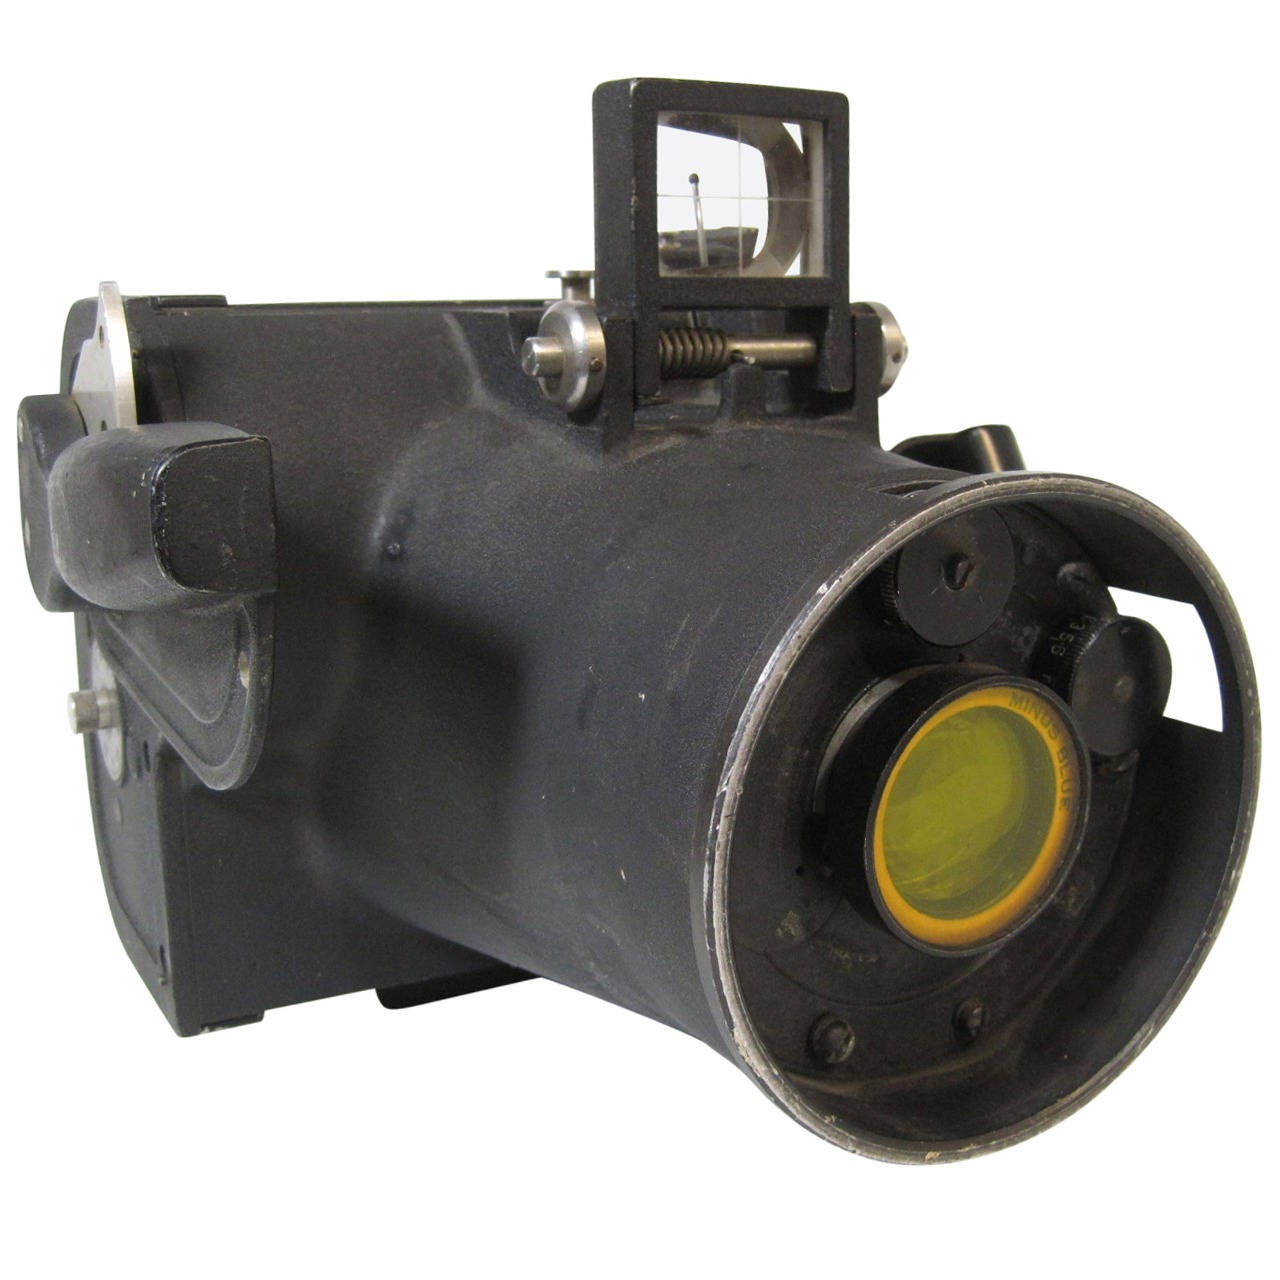 Military Aviation Aerial Photography Camera Used During the Second World War